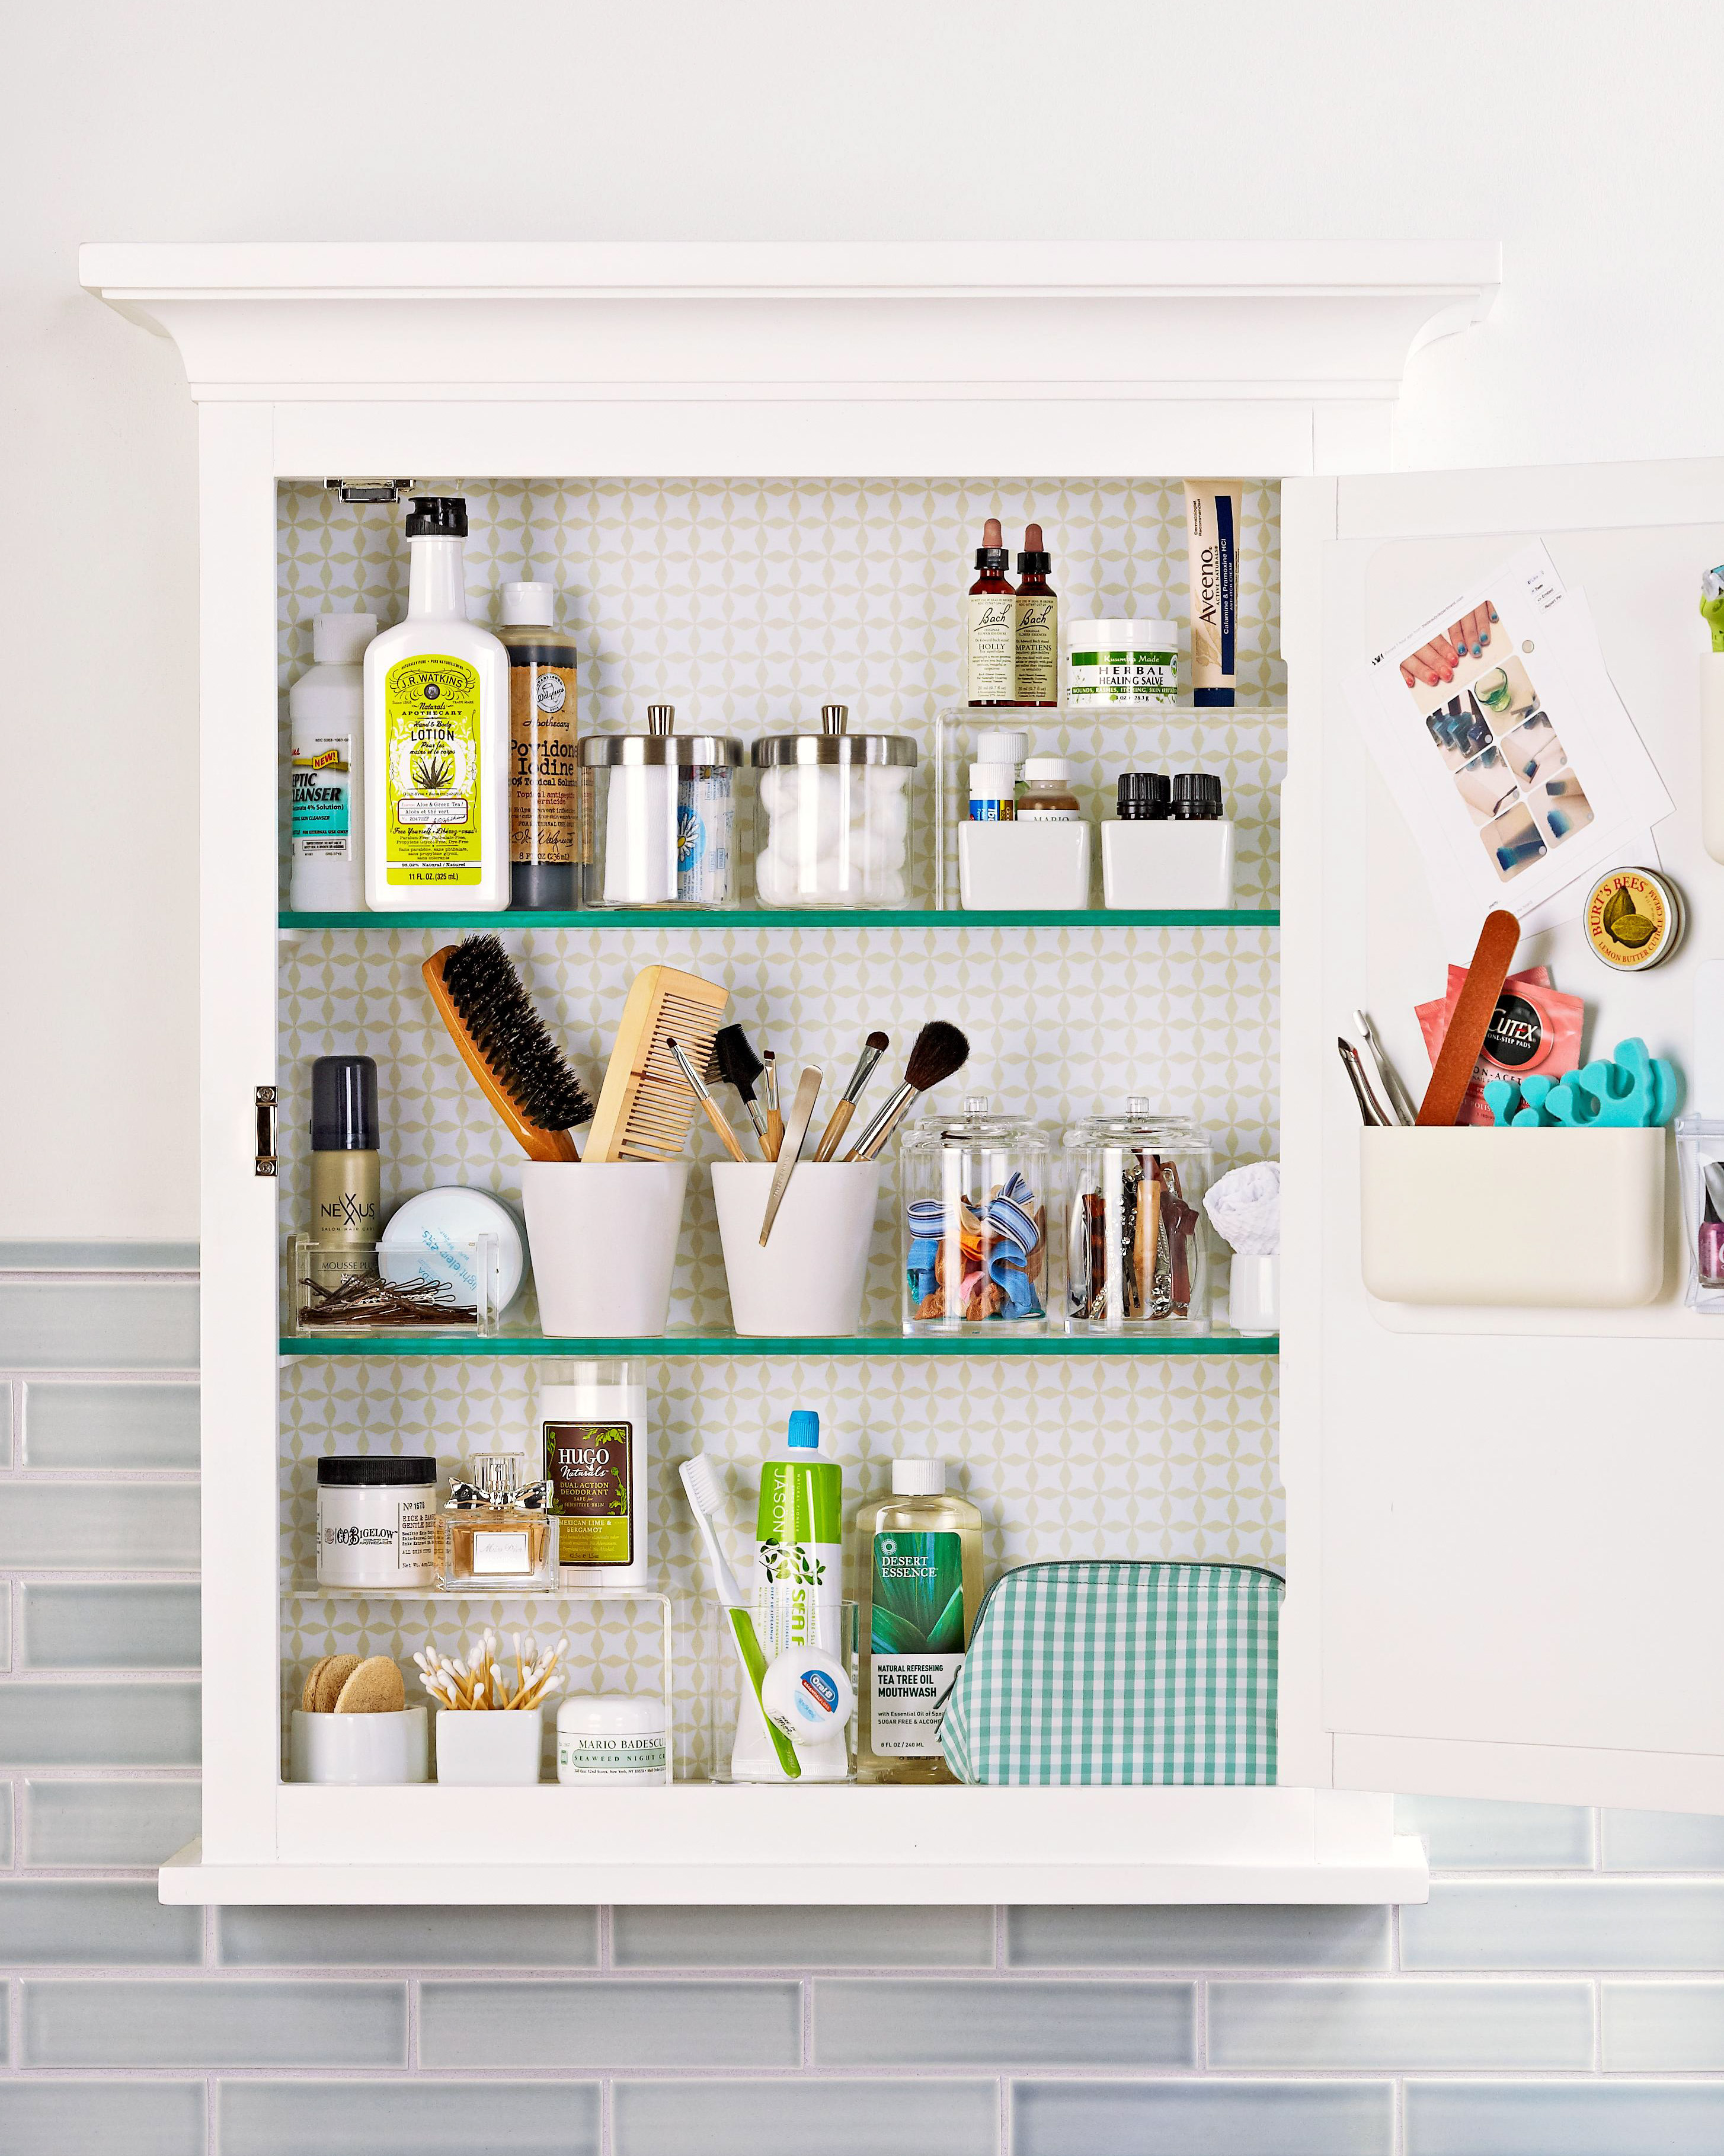 medicine cabinet fully stocked brushes combs toothpaste